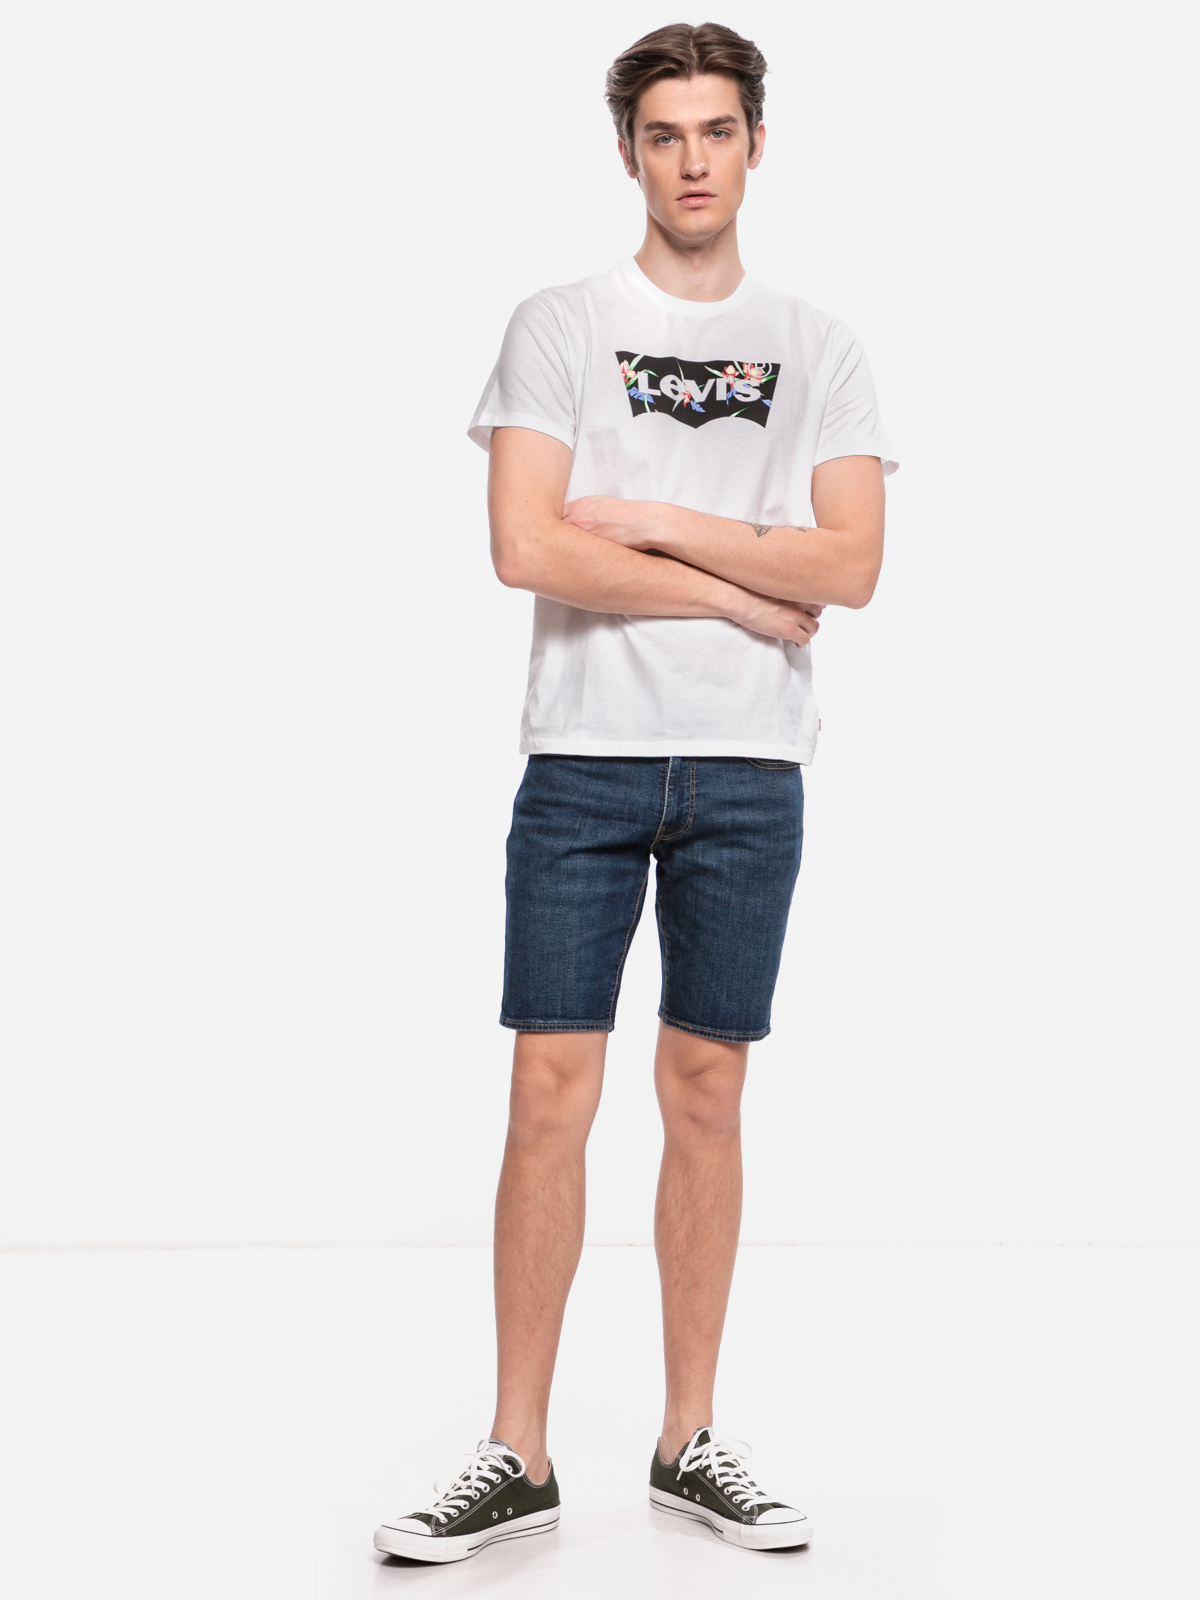 LEVIS the graphic tee housemark-2